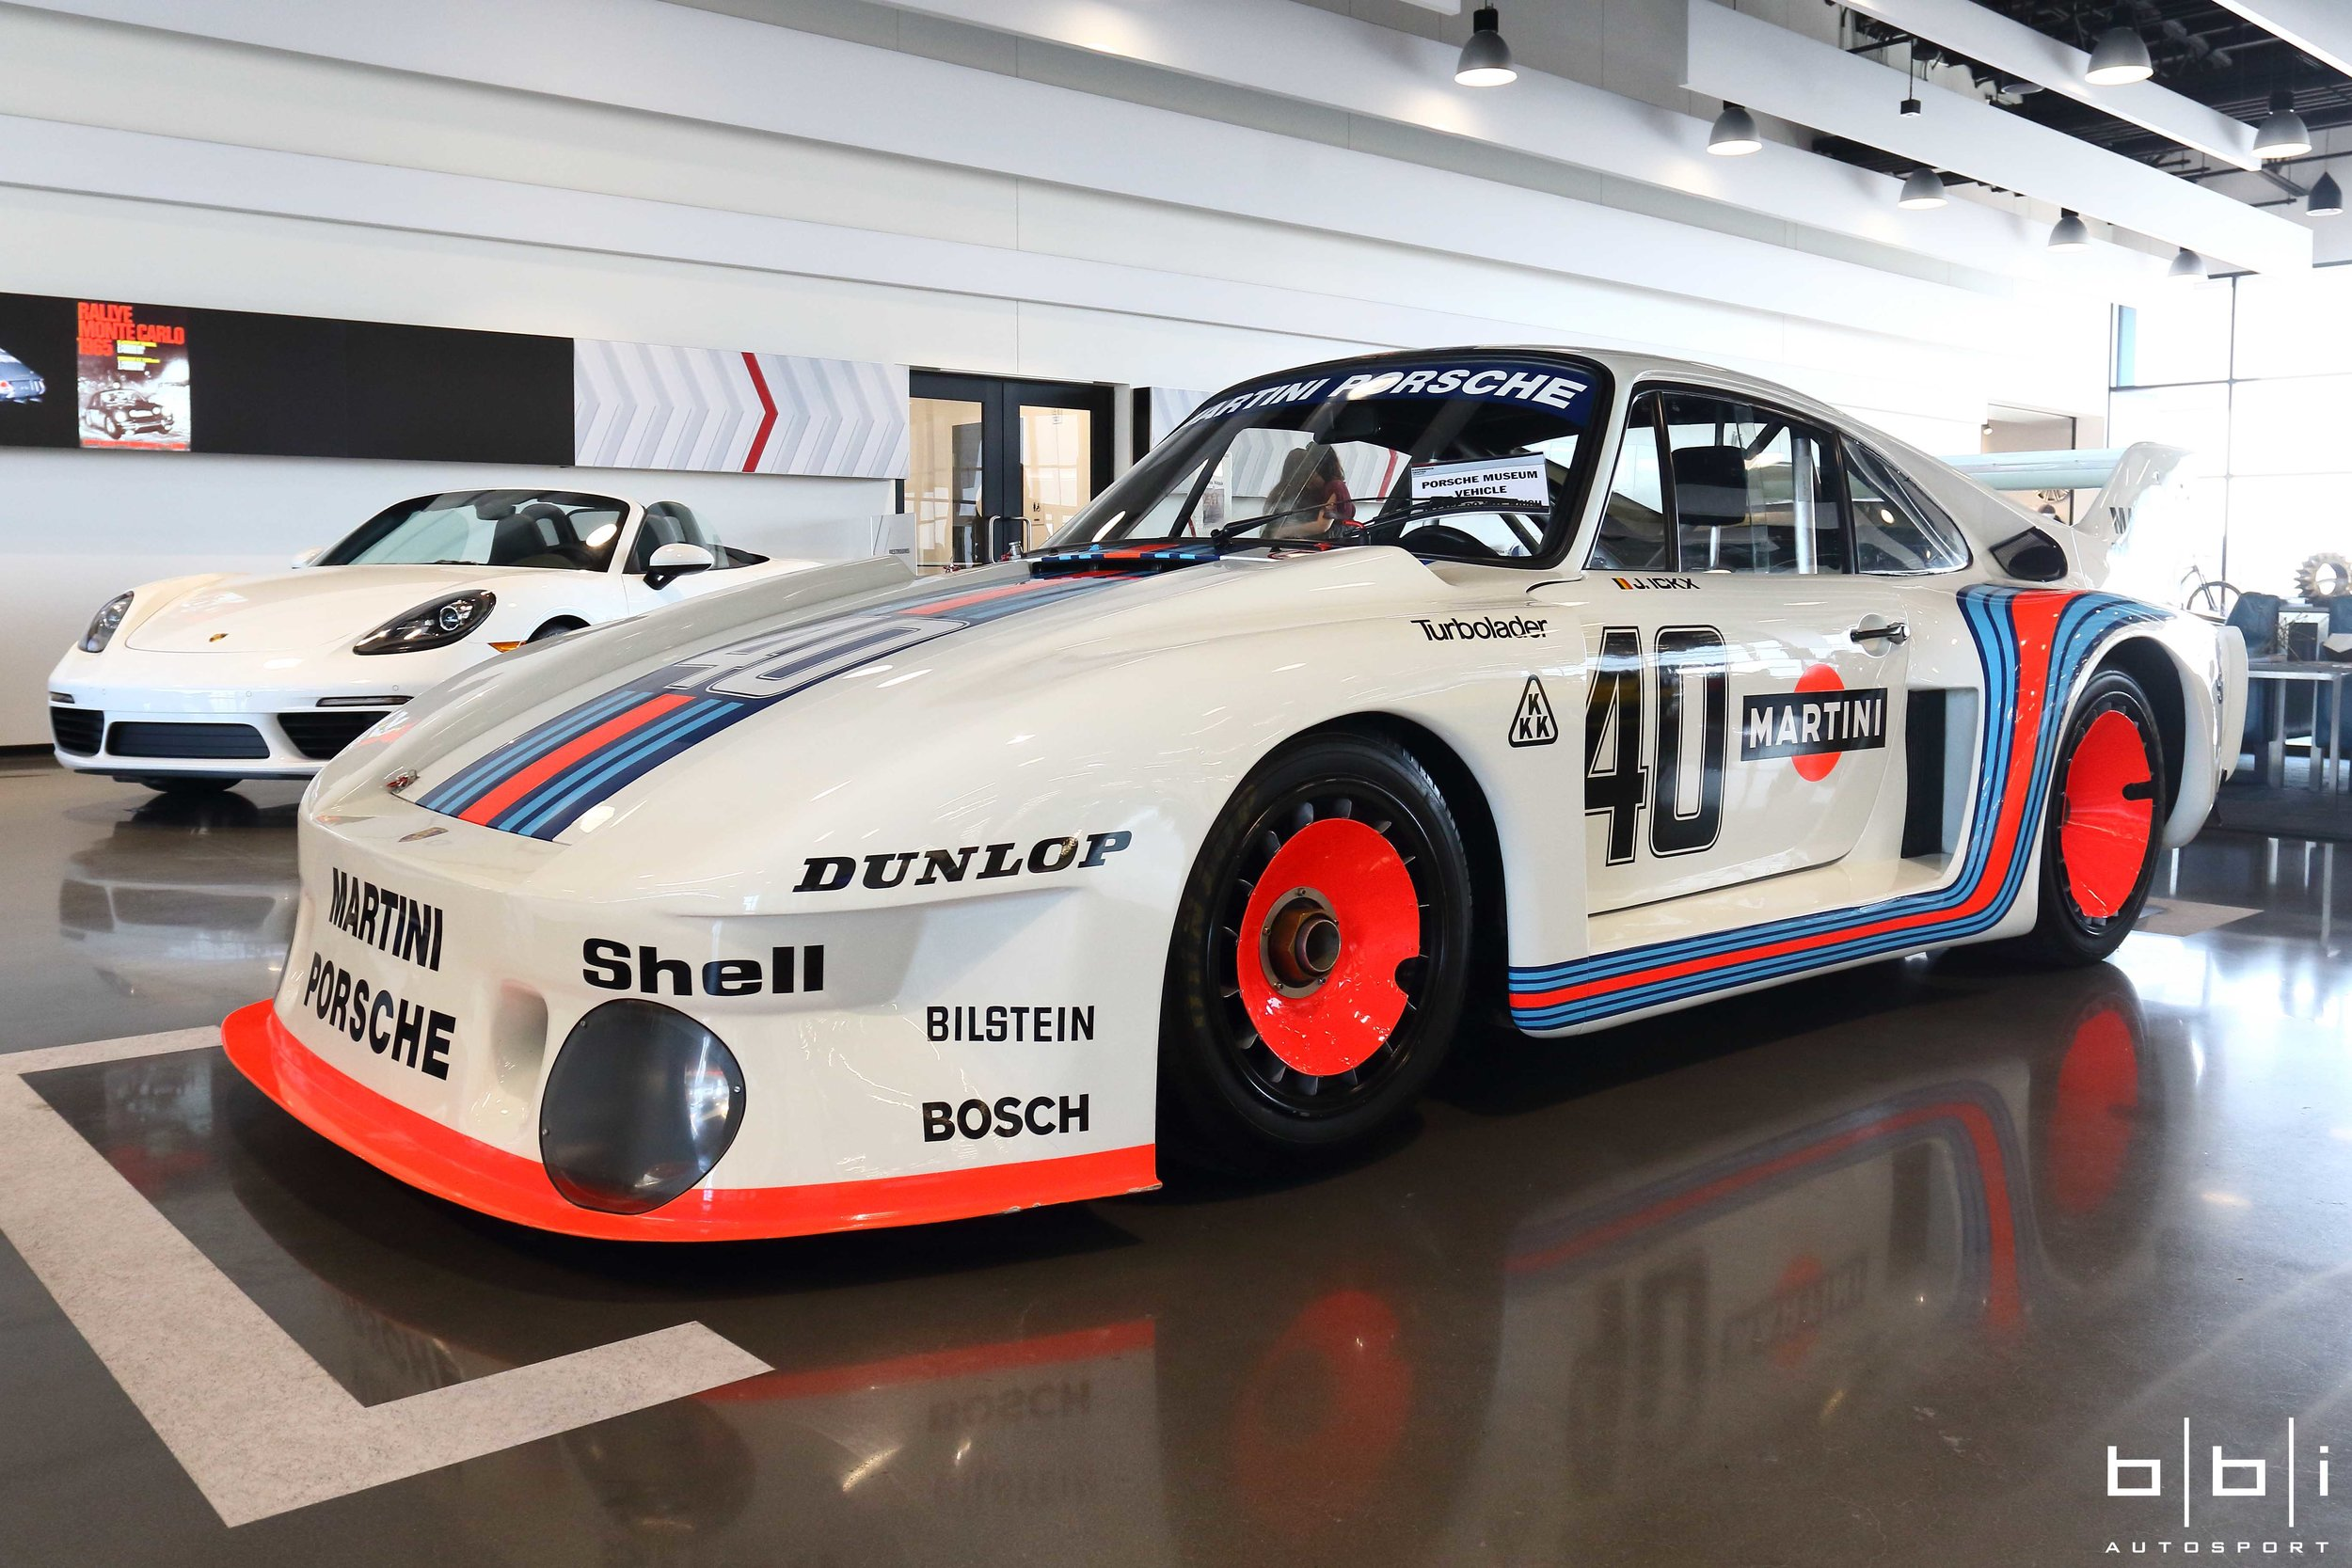 """Inside, our favorite car on display was this 1977 Porsche """"Baby"""" 935/2.0. To comply with 2 liter regulations of the class, the """"Baby"""" 935 with the legendary Martini livery has a tiny single turbo 1425 cc engine producing 370hp."""